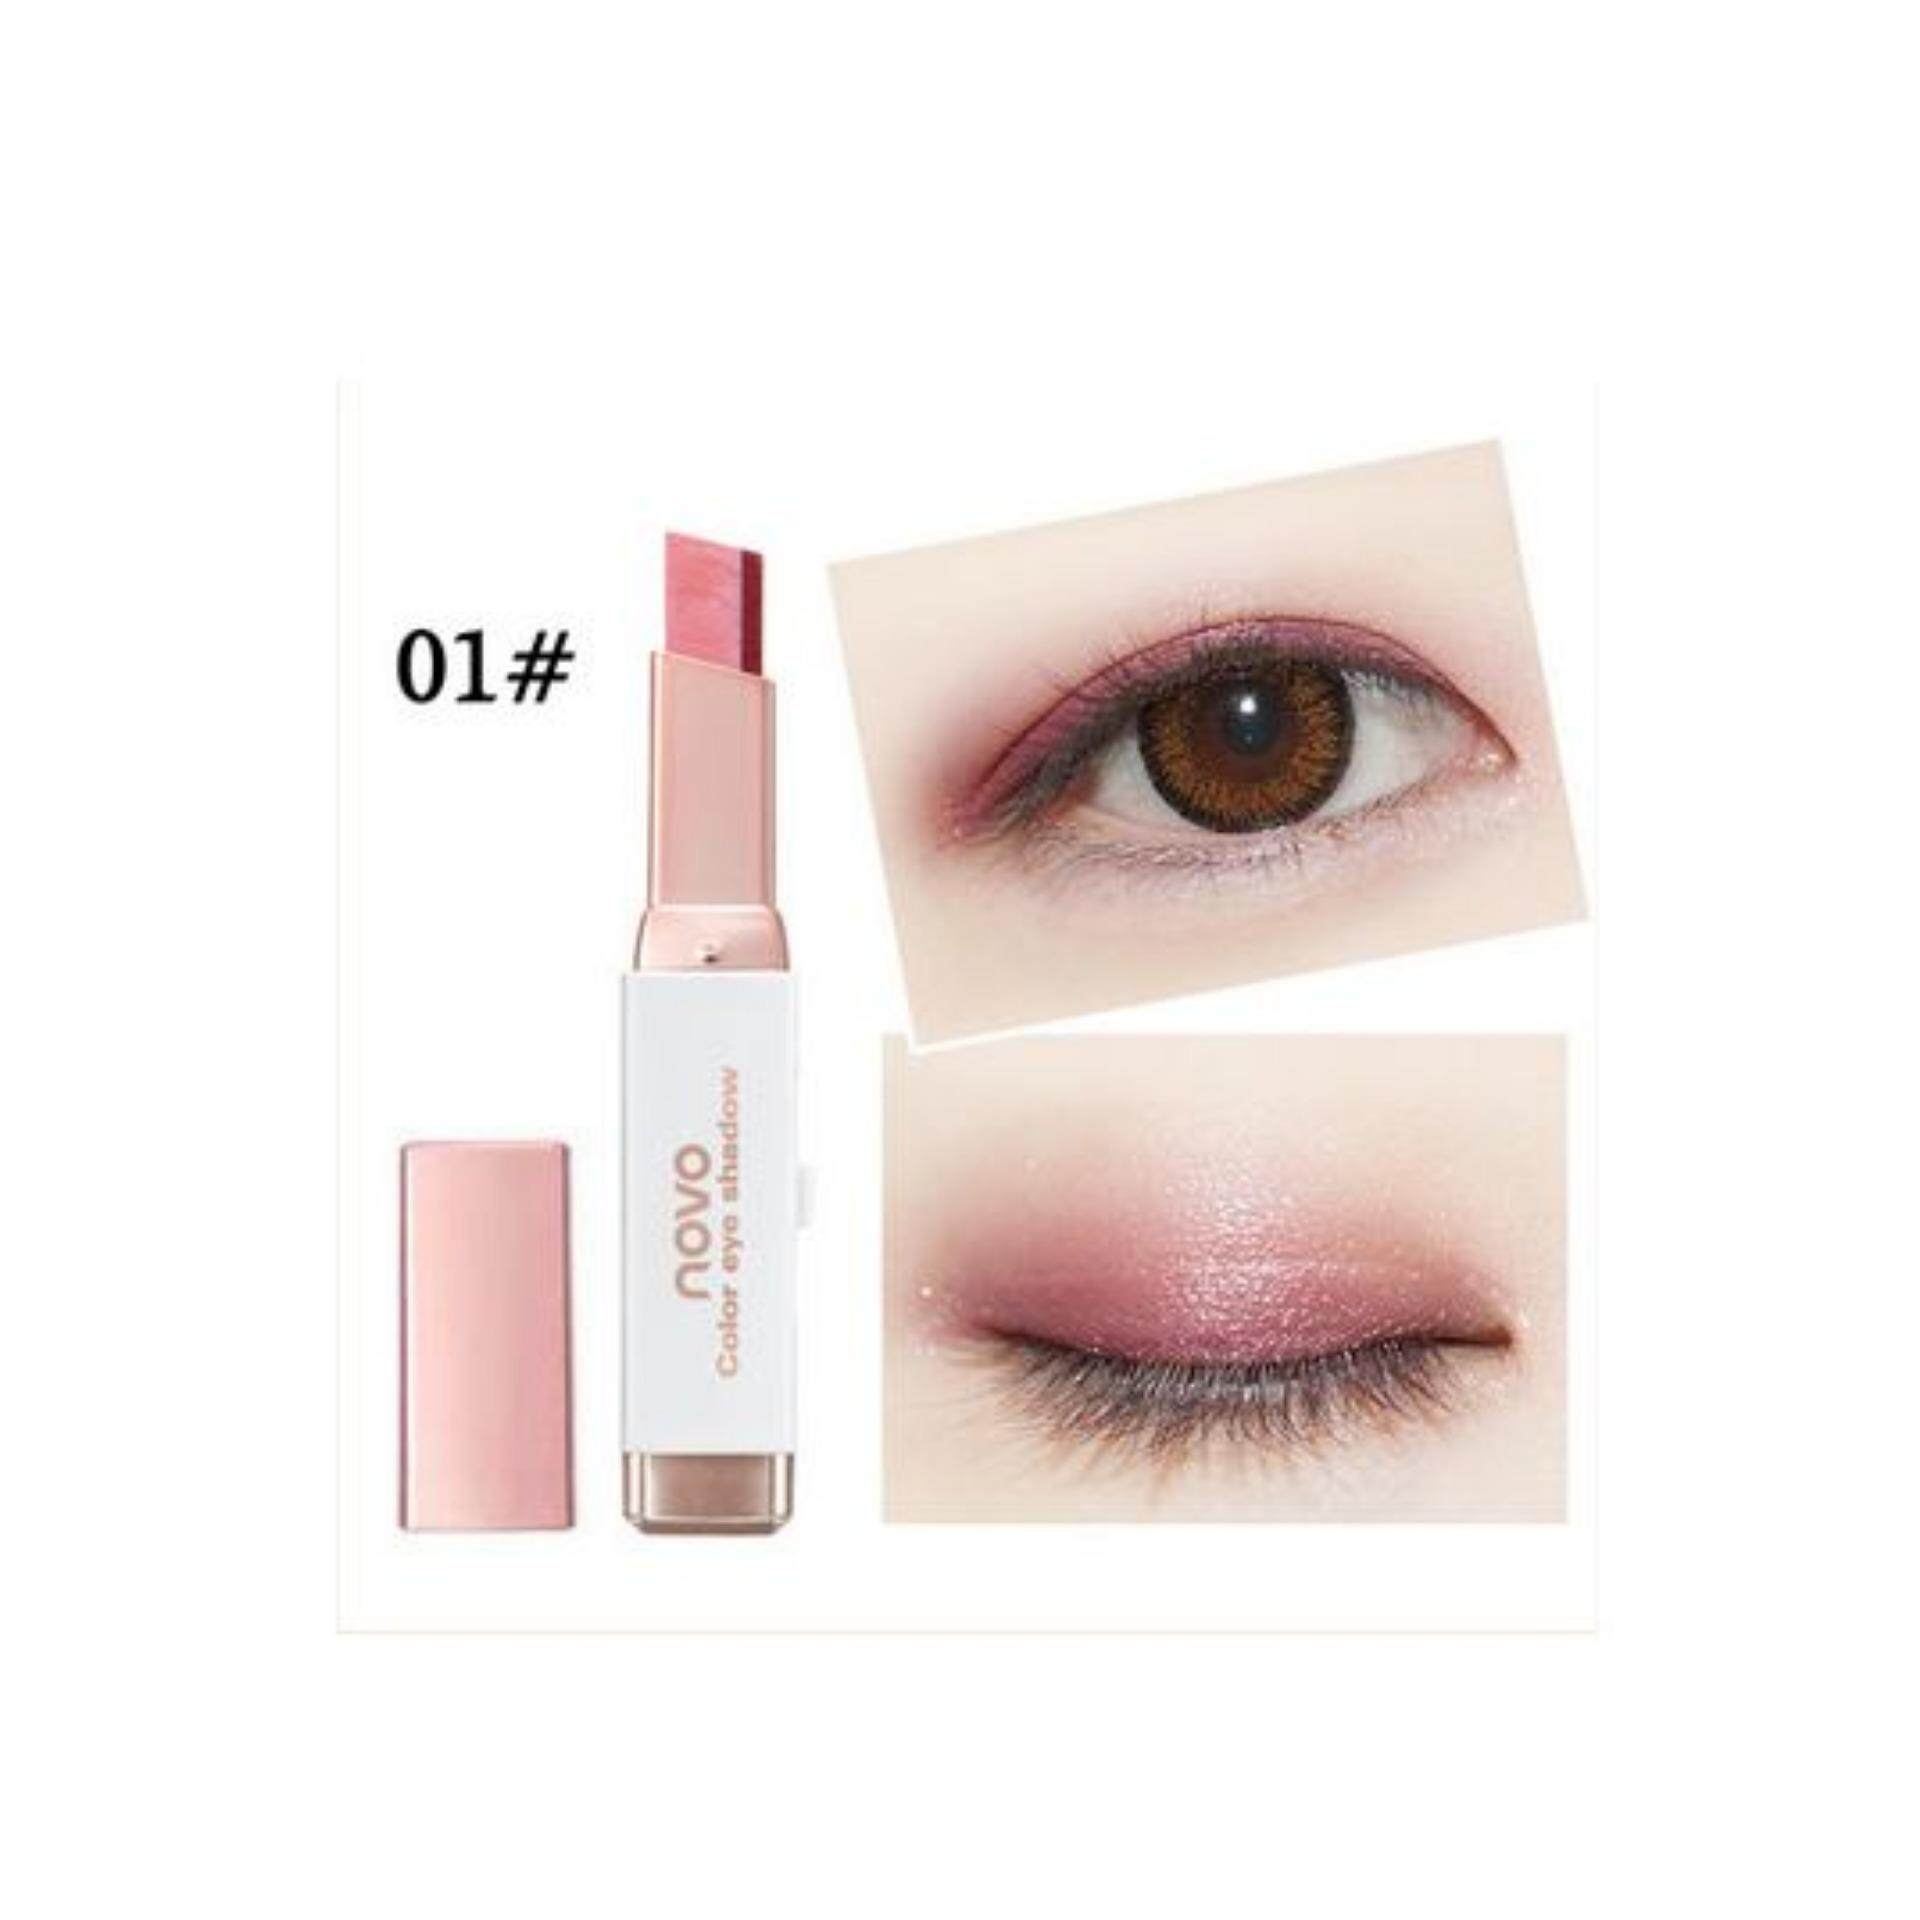 Novo 2Tone eyeshadow #01